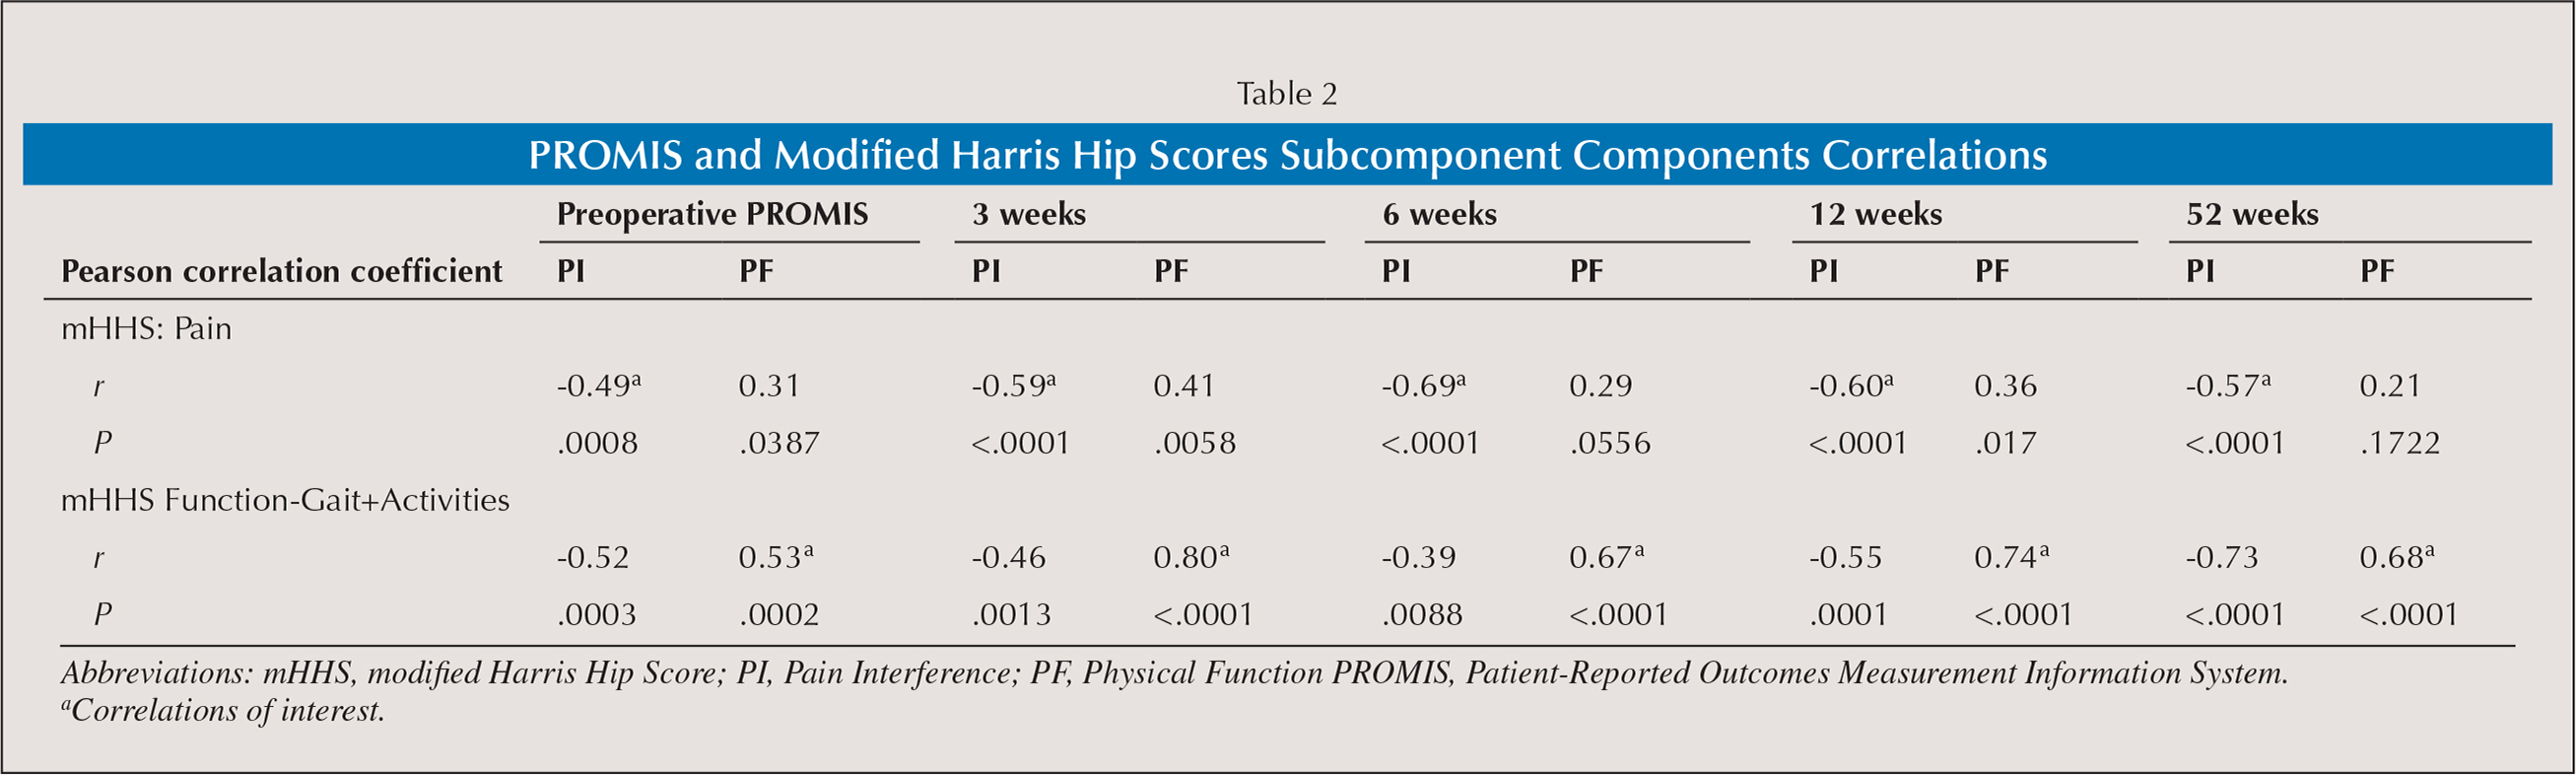 PROMIS and Modified Harris Hip Scores Subcomponent Components Correlations